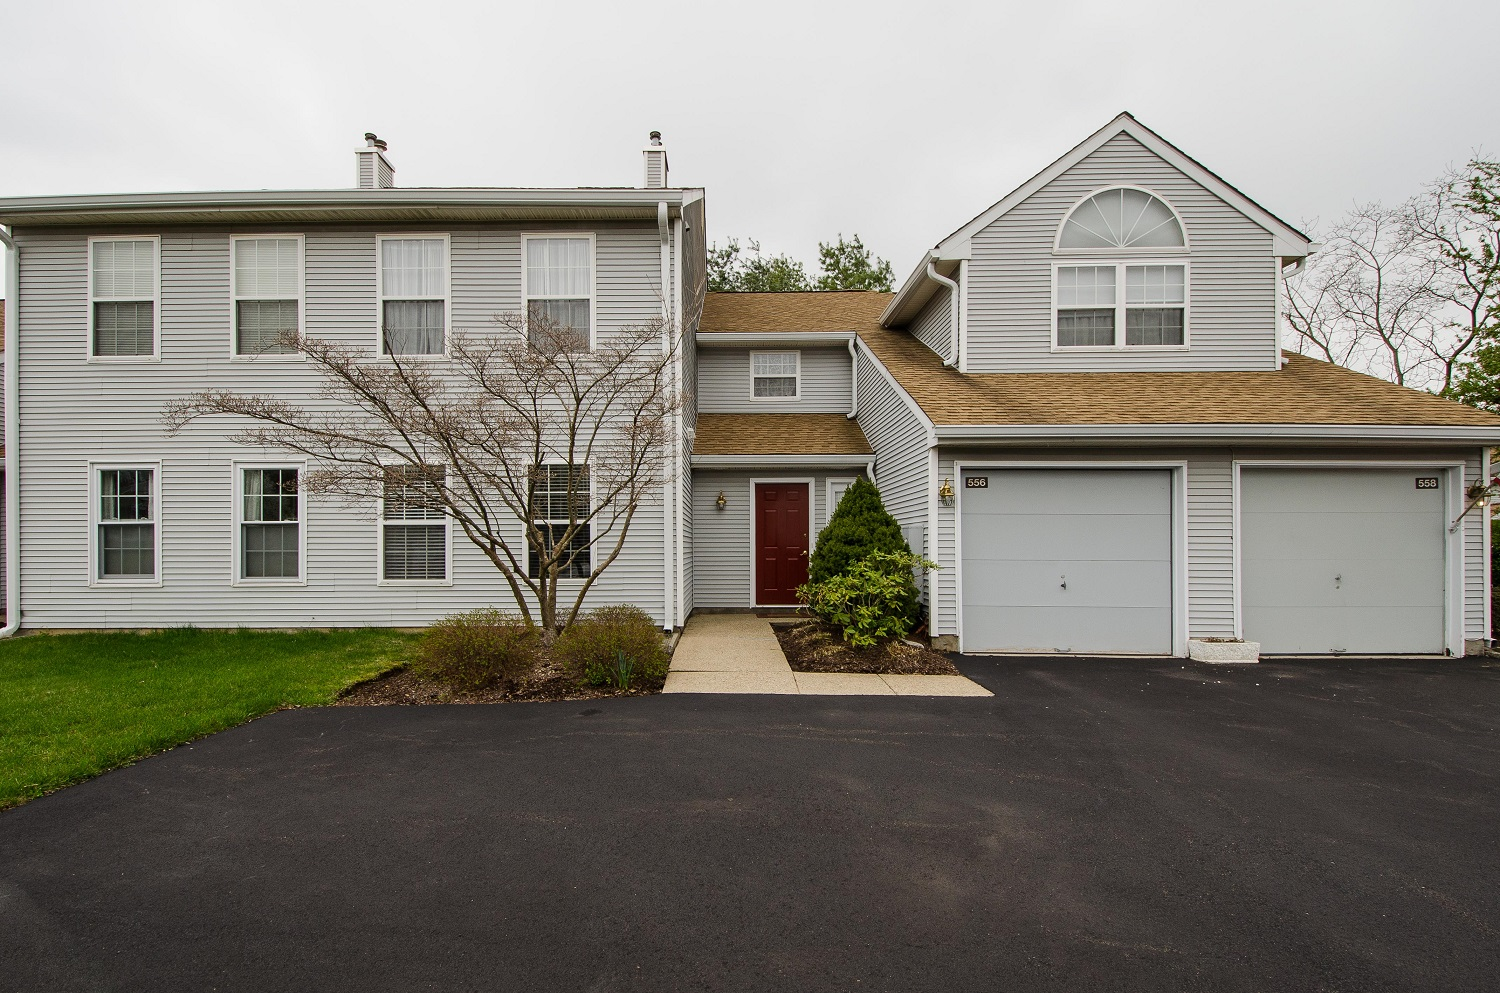 Sold! 556 Cedar Hollow Dr. in Makefield Glen, Yardley, PA 19067